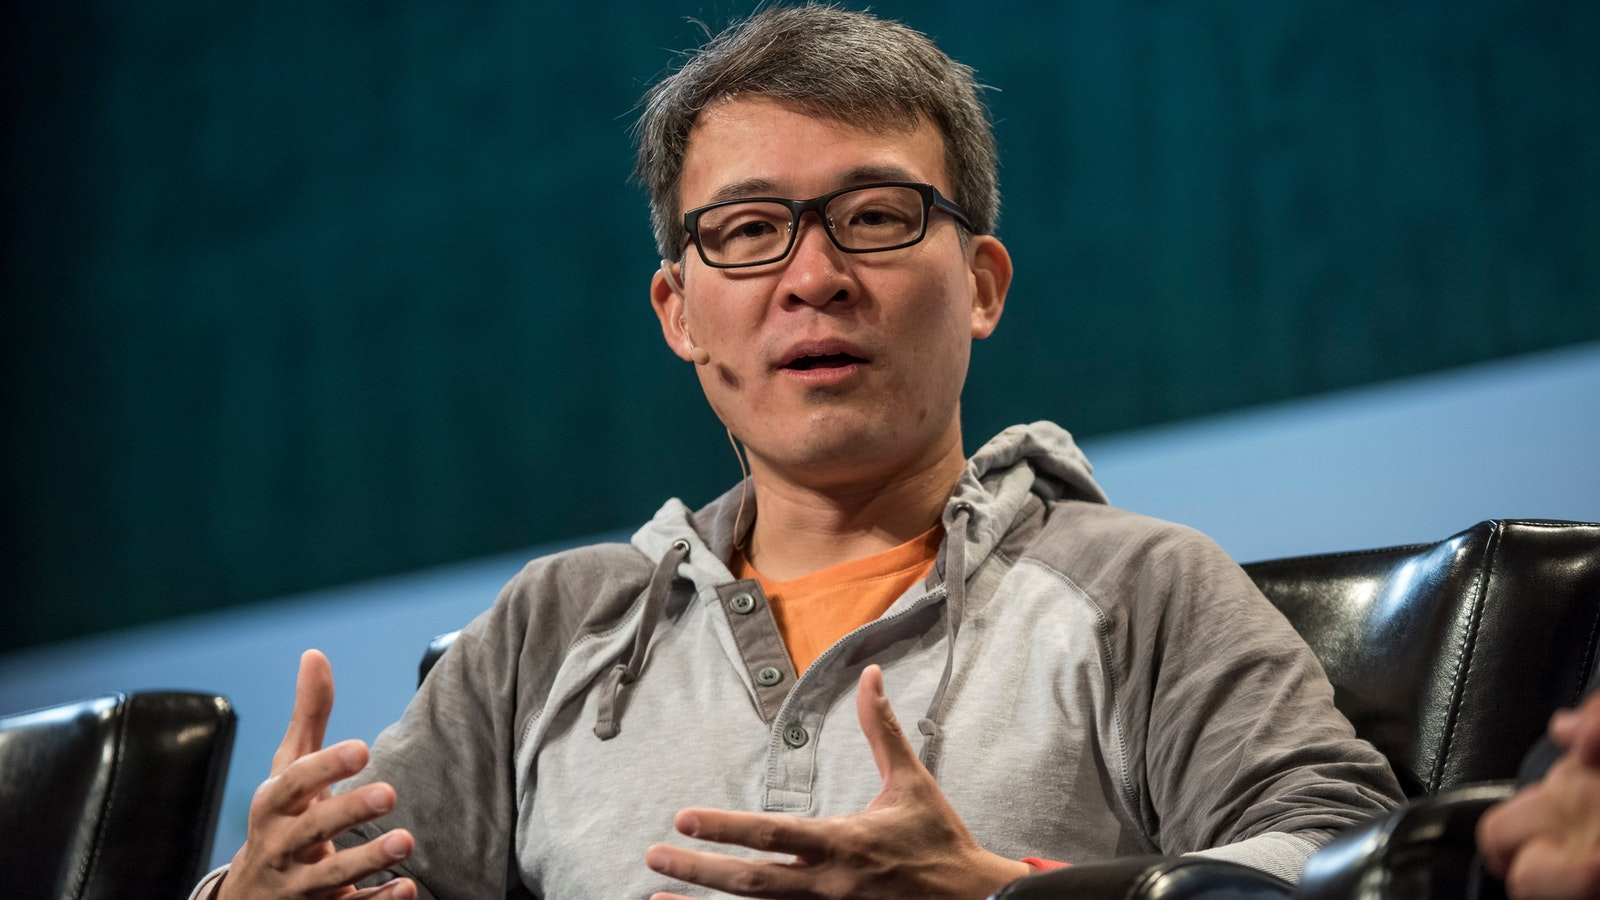 Fitbit CEO James Park. Photo by Bloomberg.